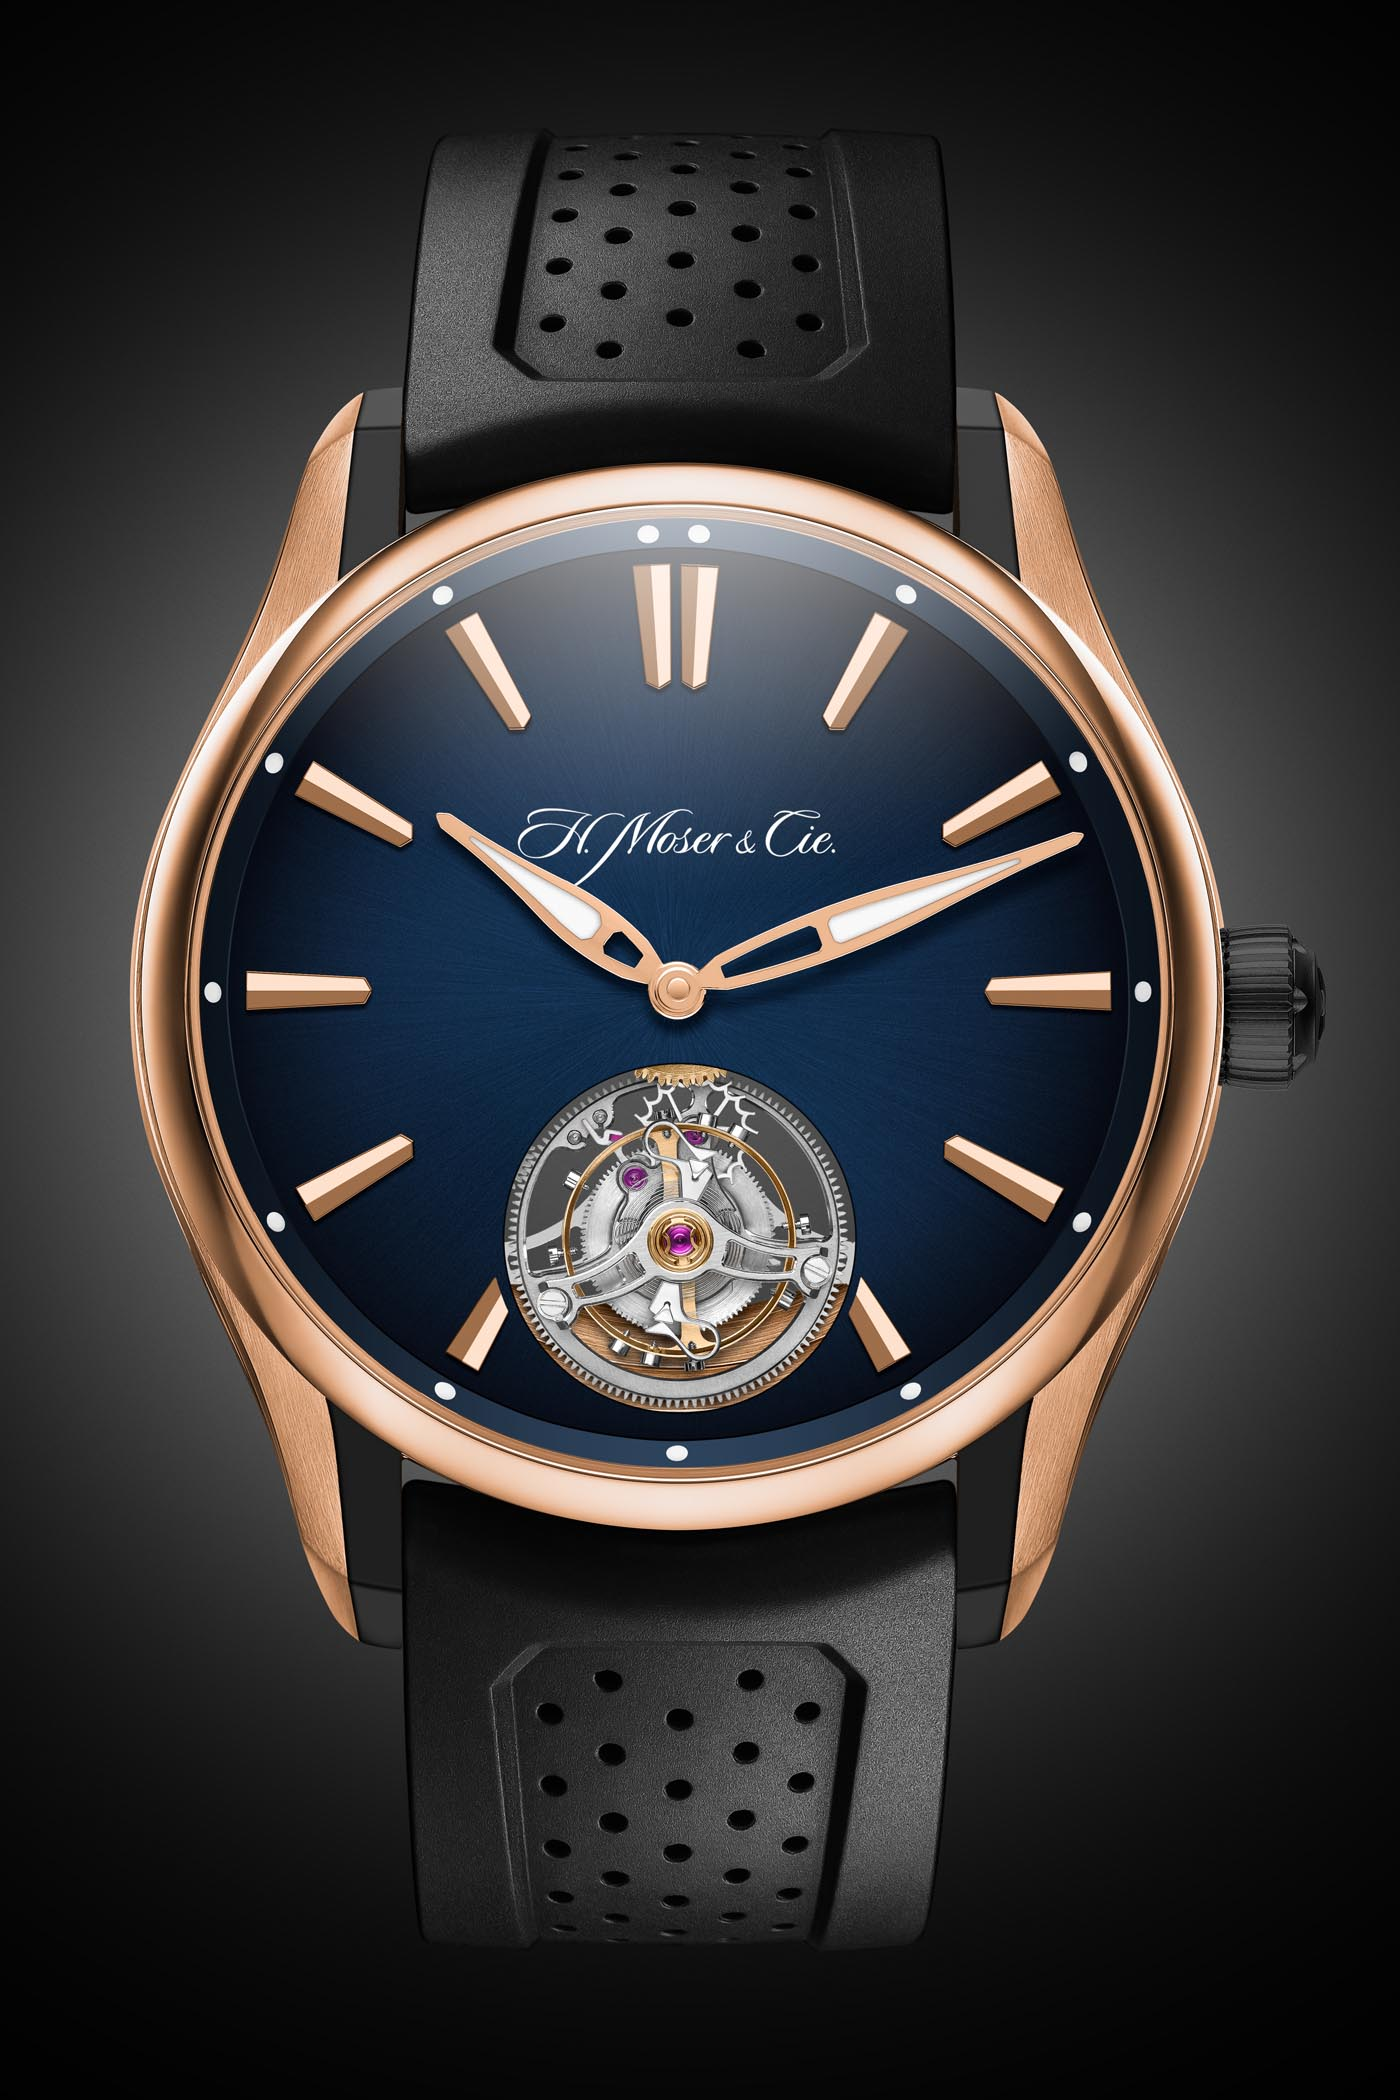 H Moser Cie Pioneer Tourbillon Red Gold-DLC Case and Blue Fume Dial - 2